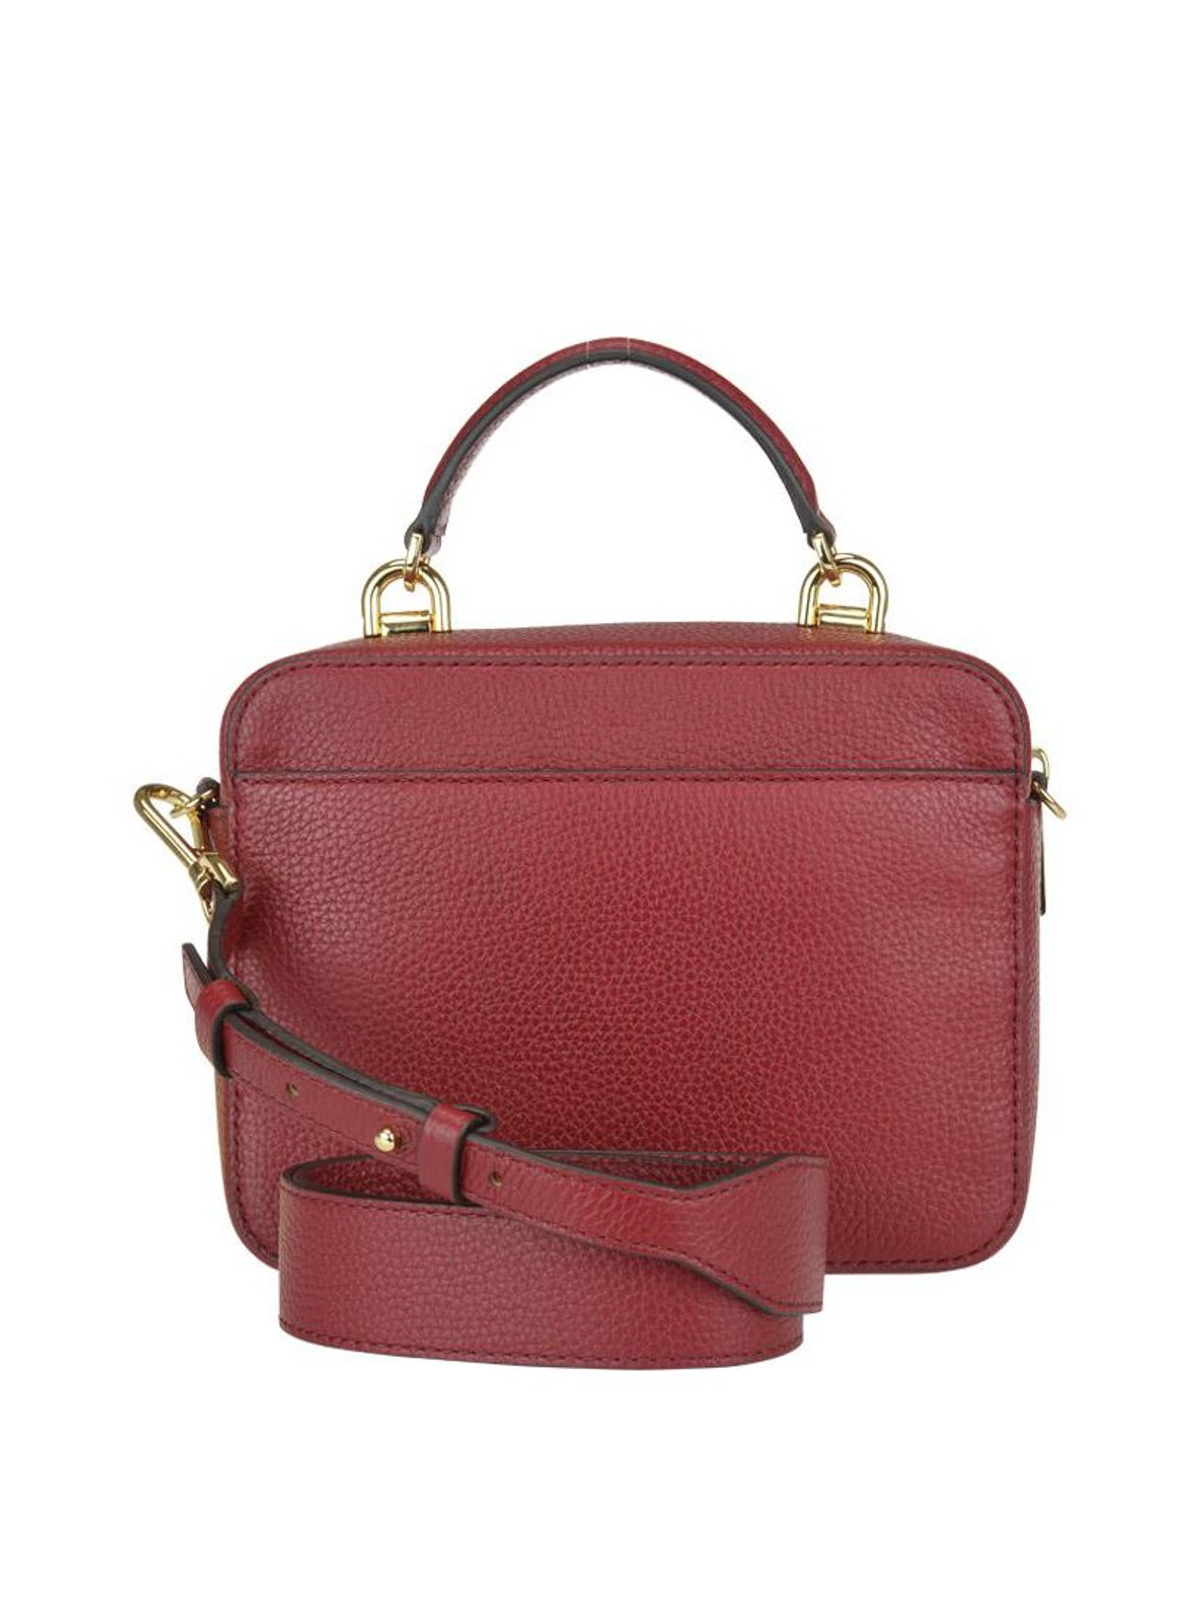 736a5e63c865 iKRIX MICHAEL KORS  cross body bags - Grained leather briefcase style bag